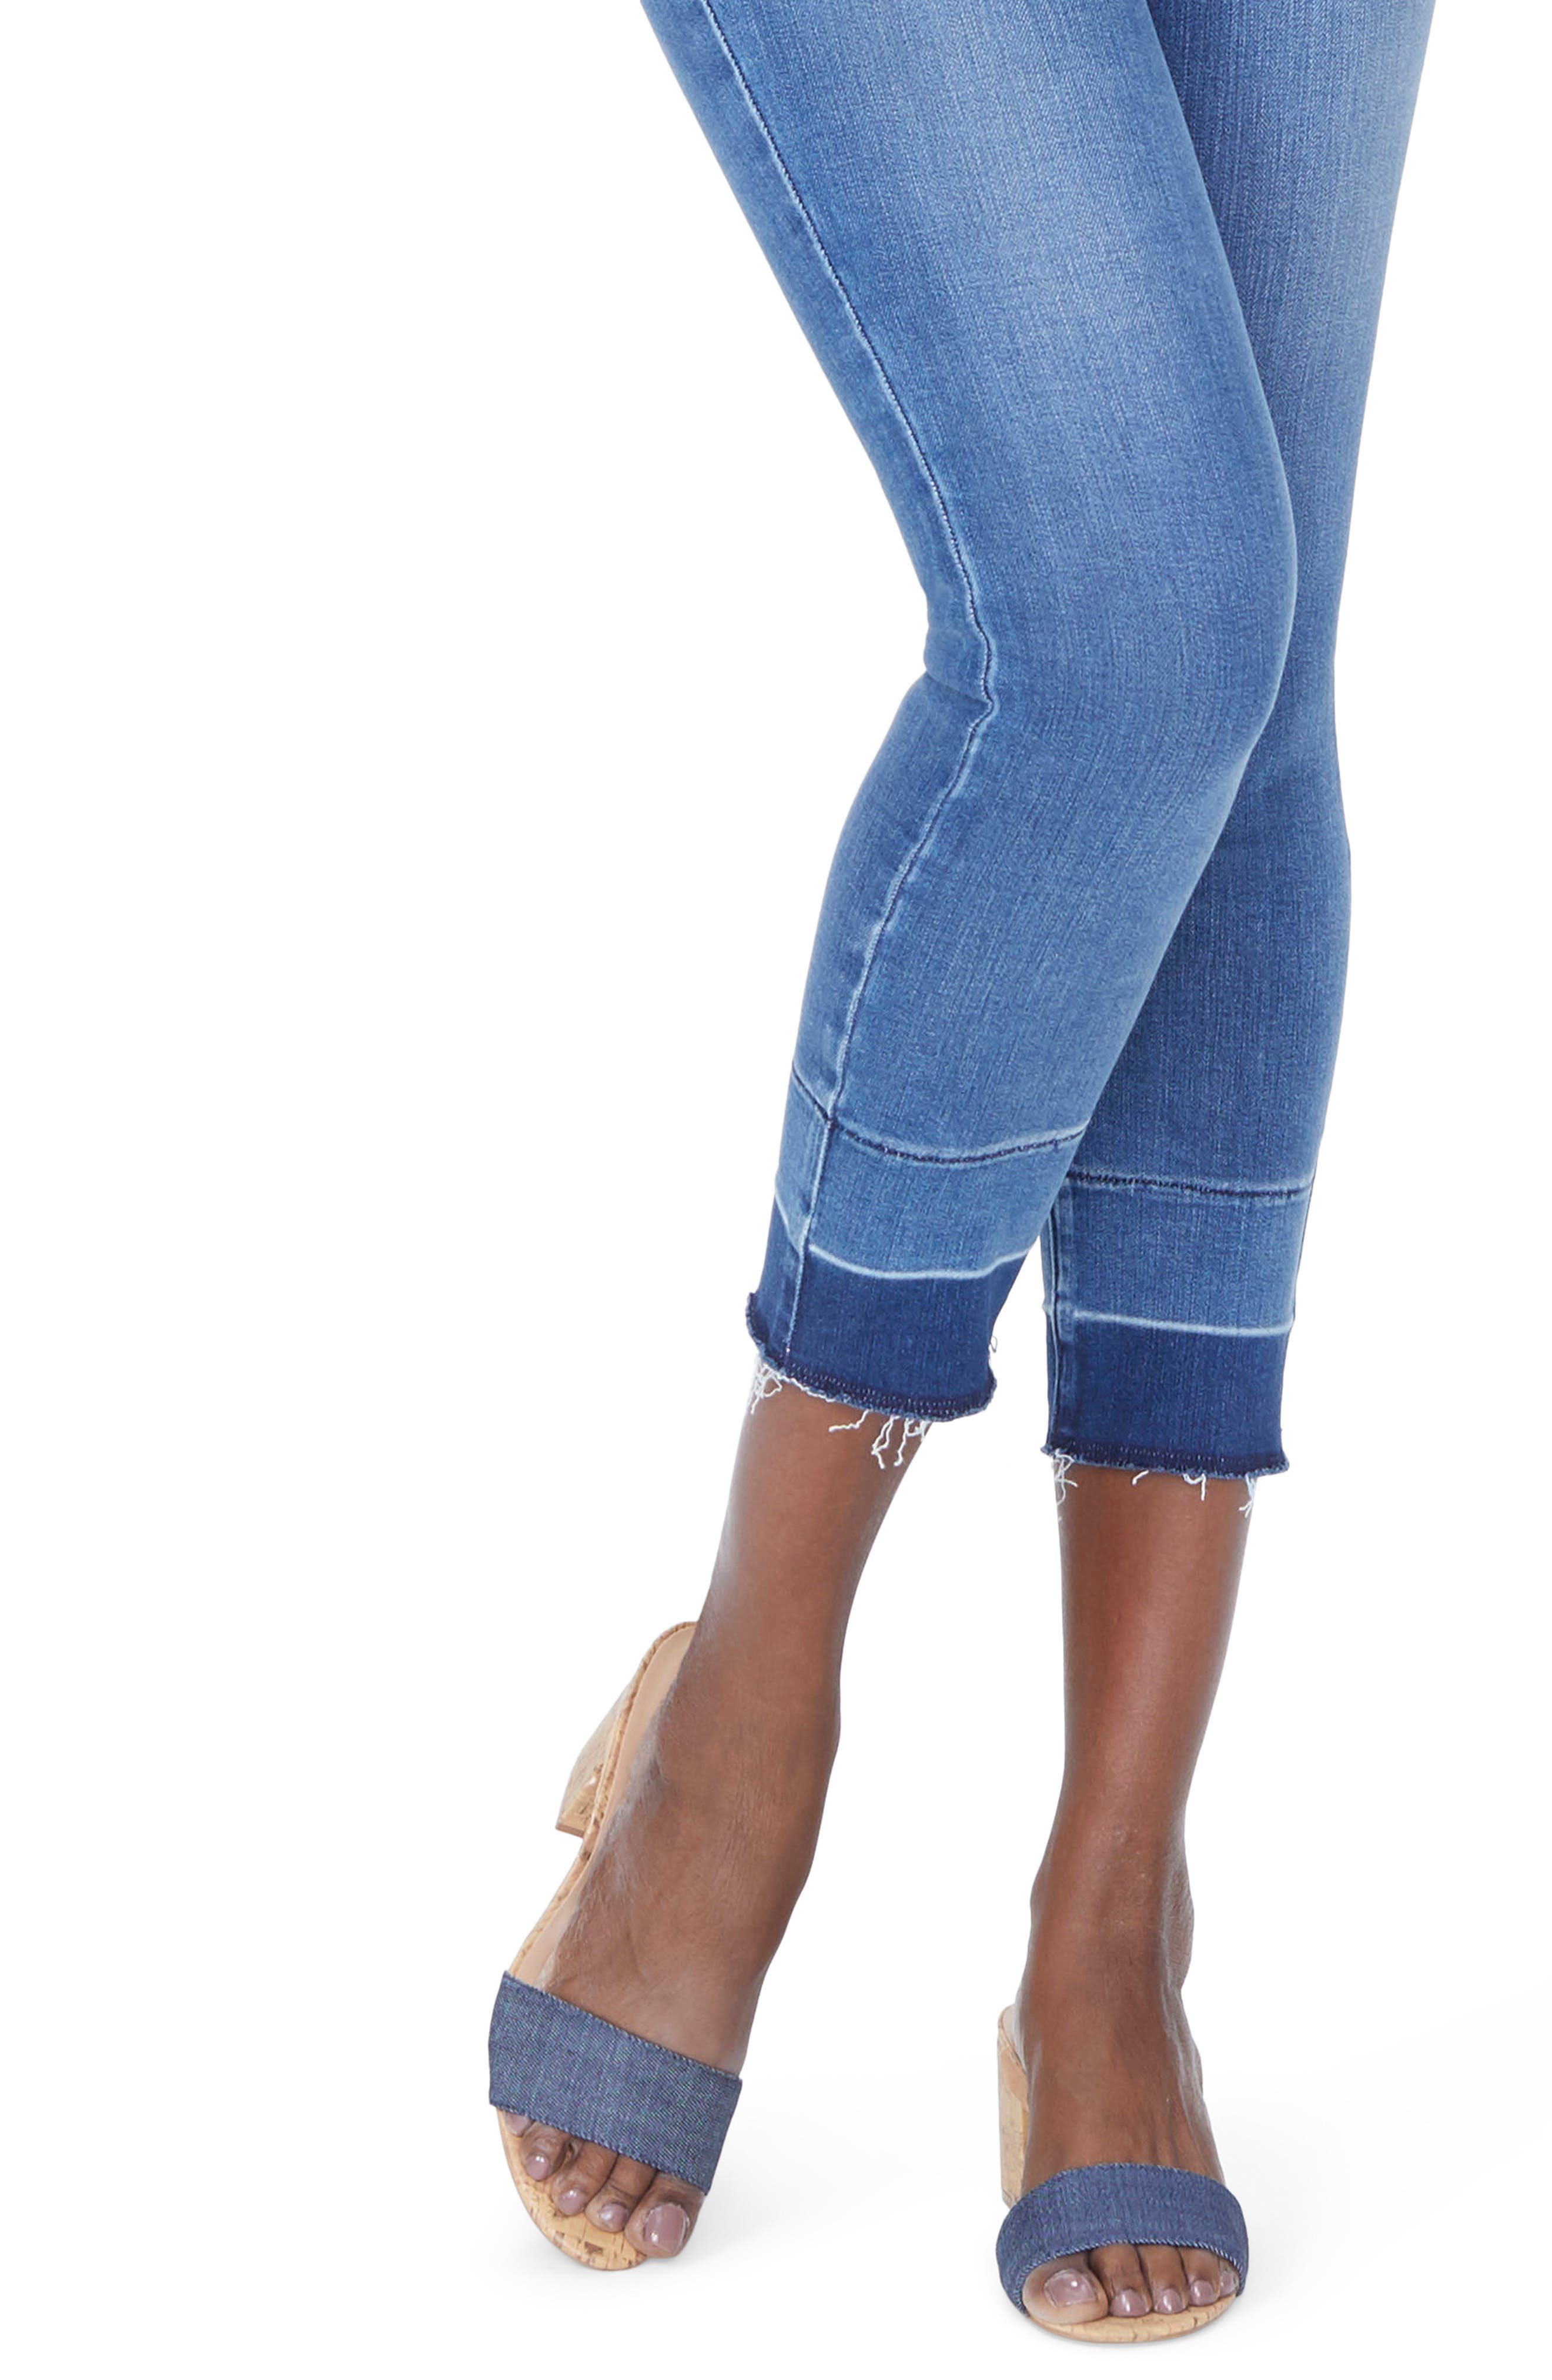 Alina Release Hem Ankle Skinny Jeans,                             Alternate thumbnail 4, color,                             410